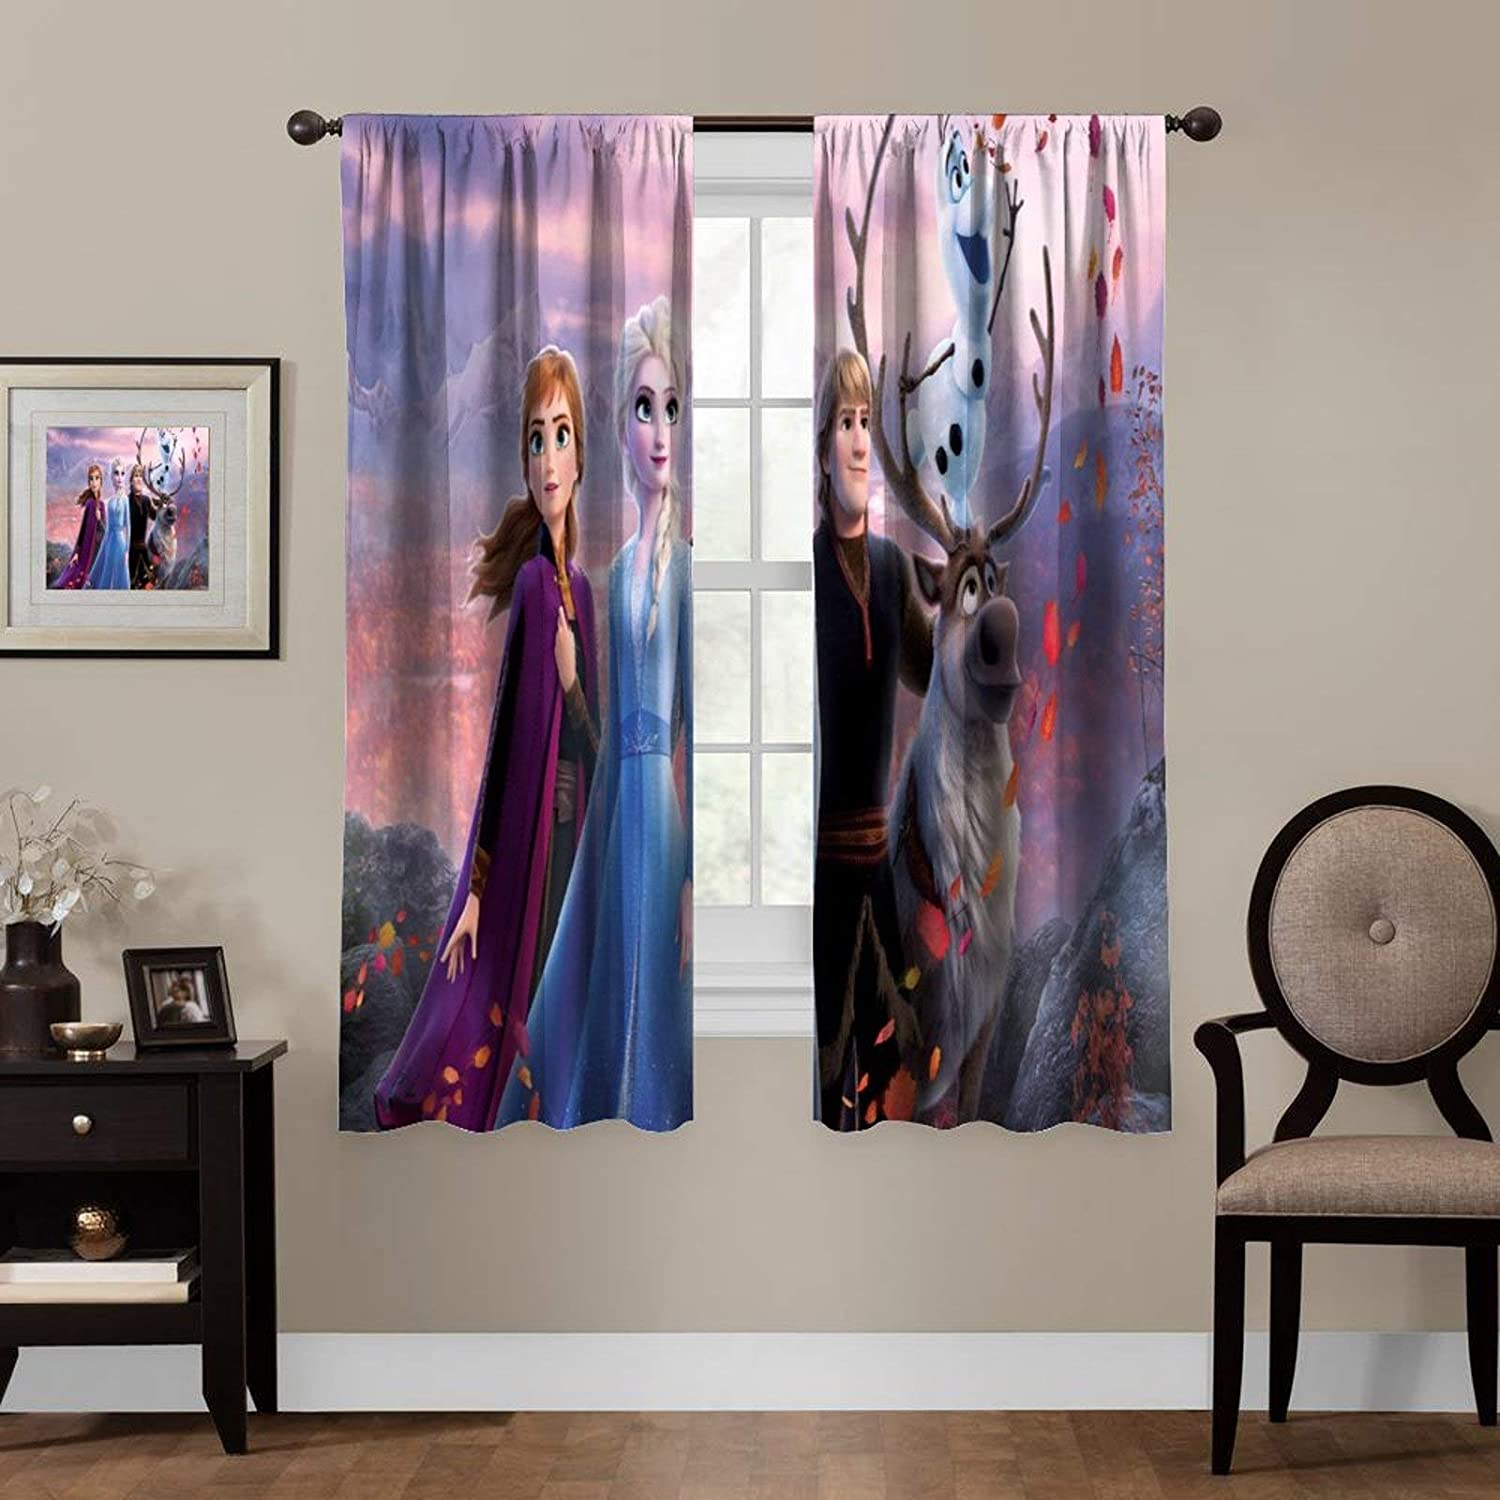 Cartoon Blackout Curtains,Anna Elsa Kristoff Olaf Sven,Room Bedroom Blinds - Solid Thermal Insulated Window Treatment,Soundproof Shade Curtains for boys and girls Room Décor (2 Panels,72x63 inches)